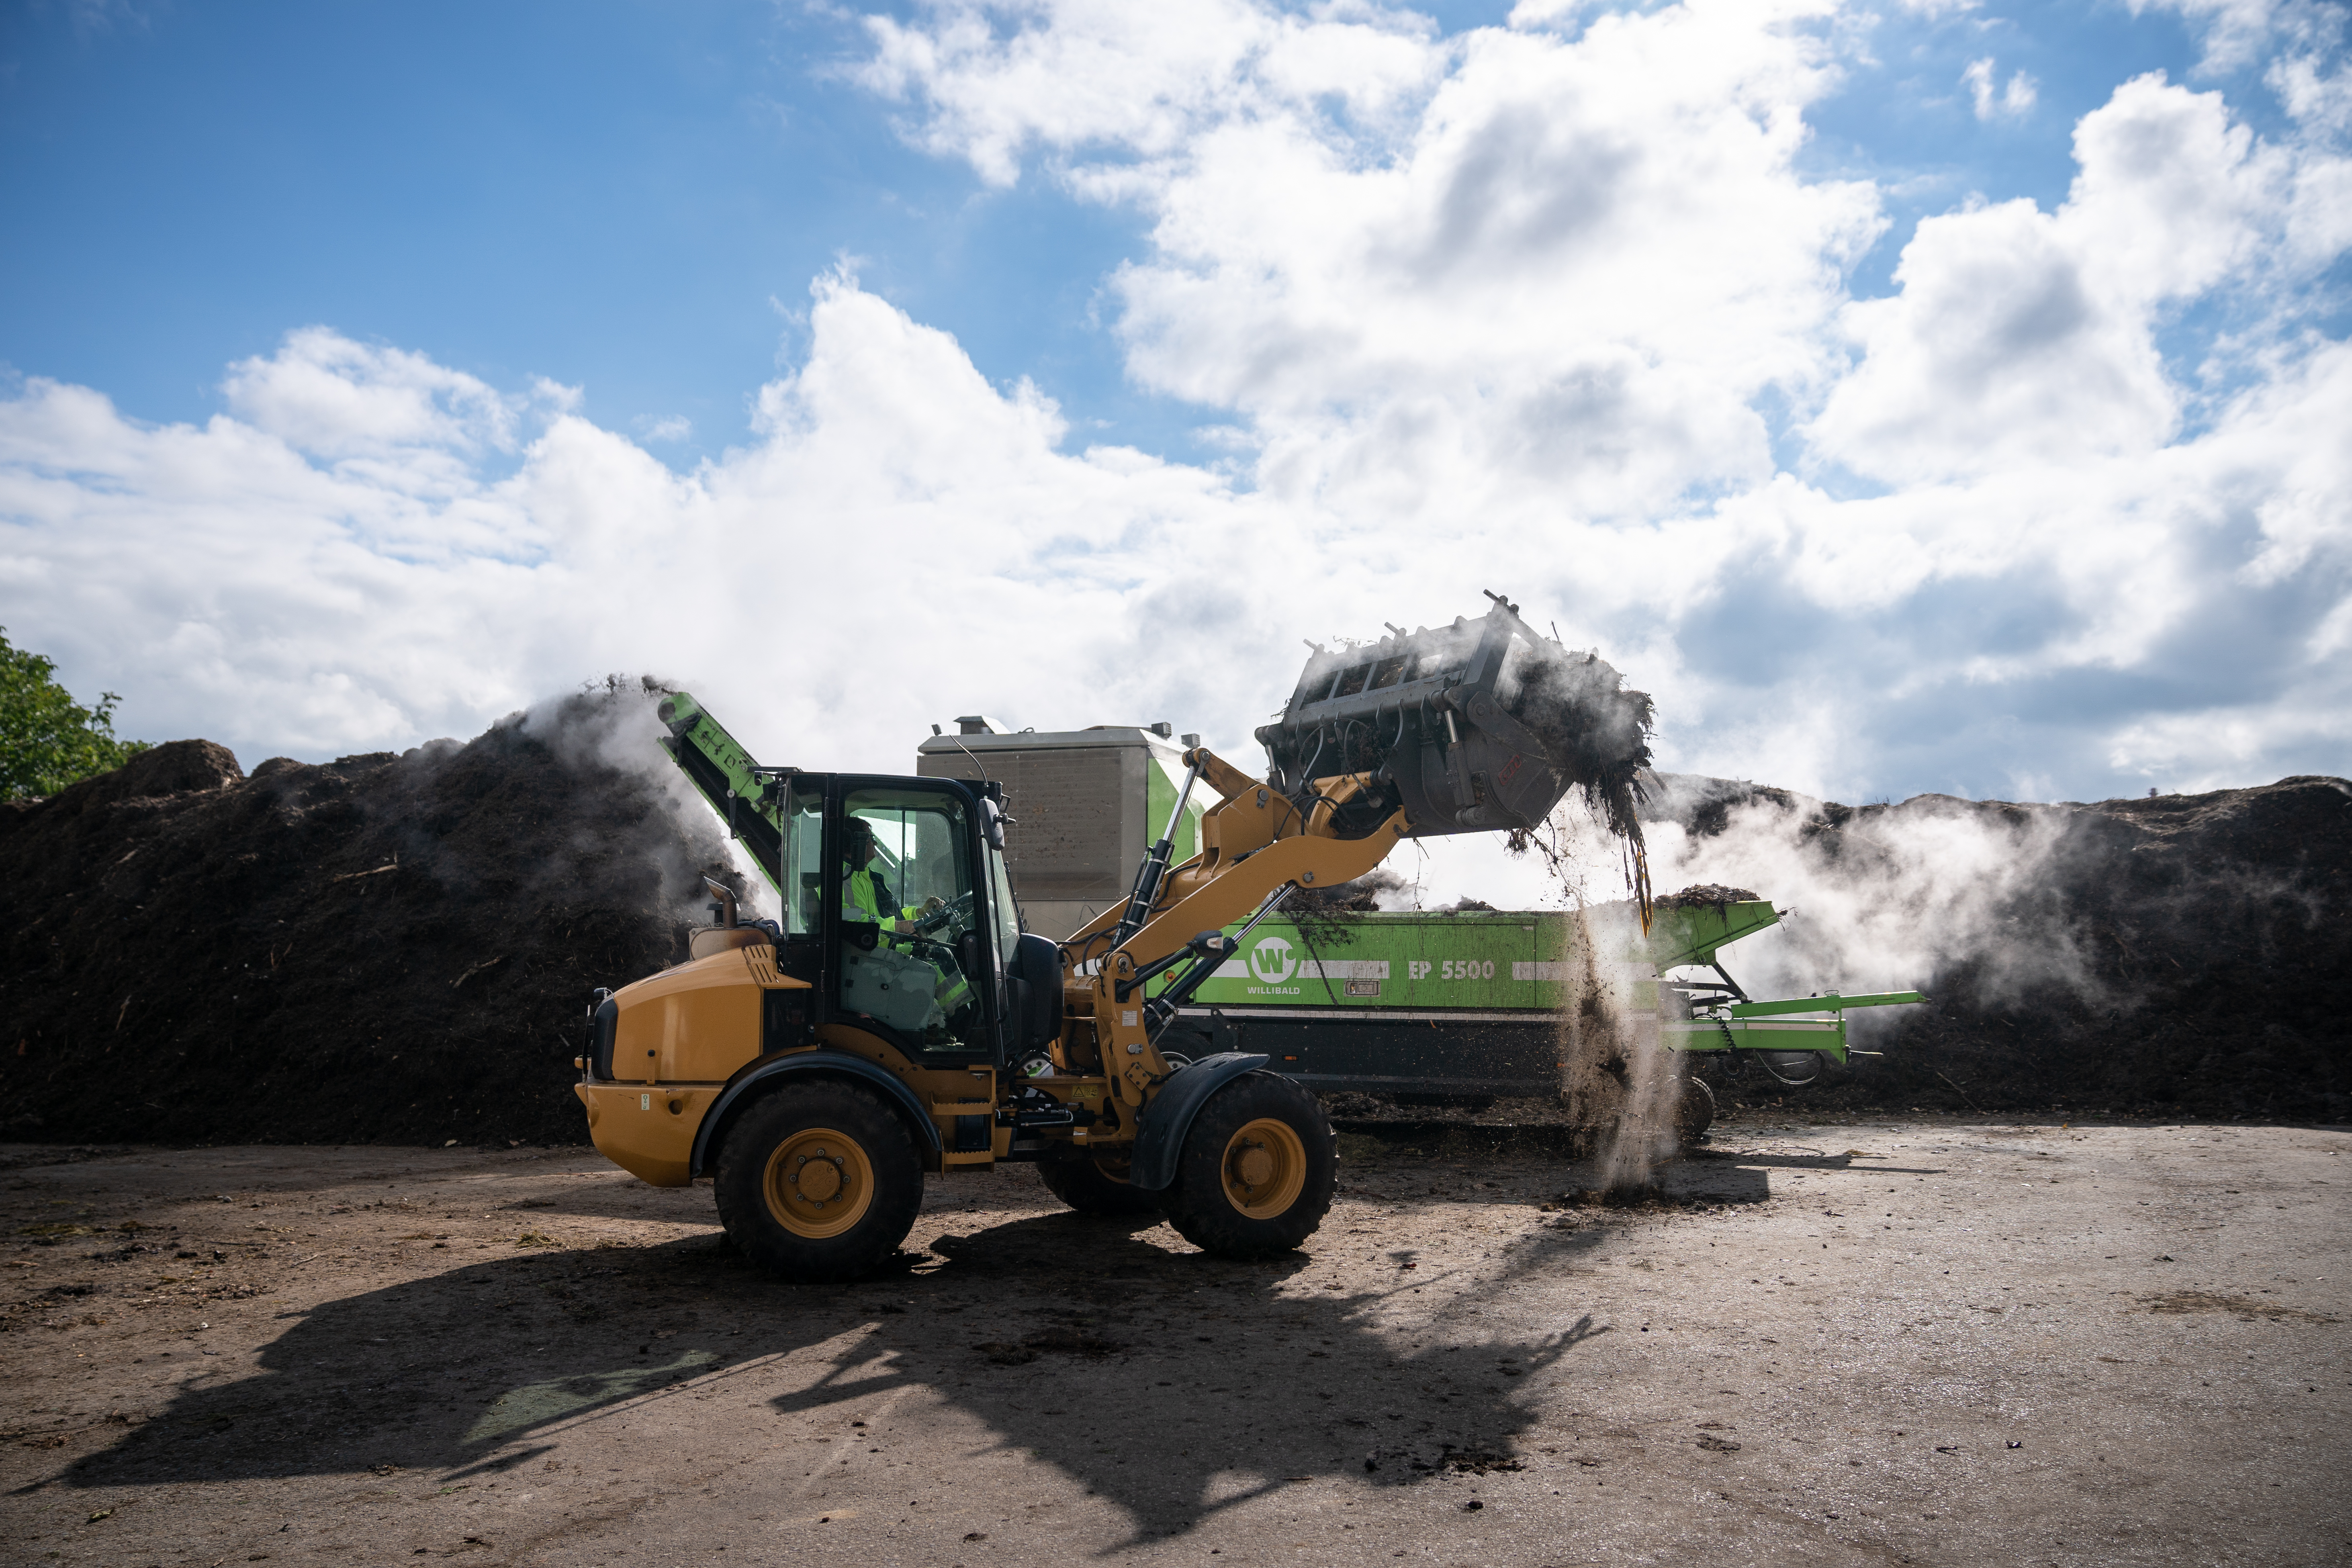 Shredding biomass: Green waste and branch material are shredded to a diameter of 25 cm